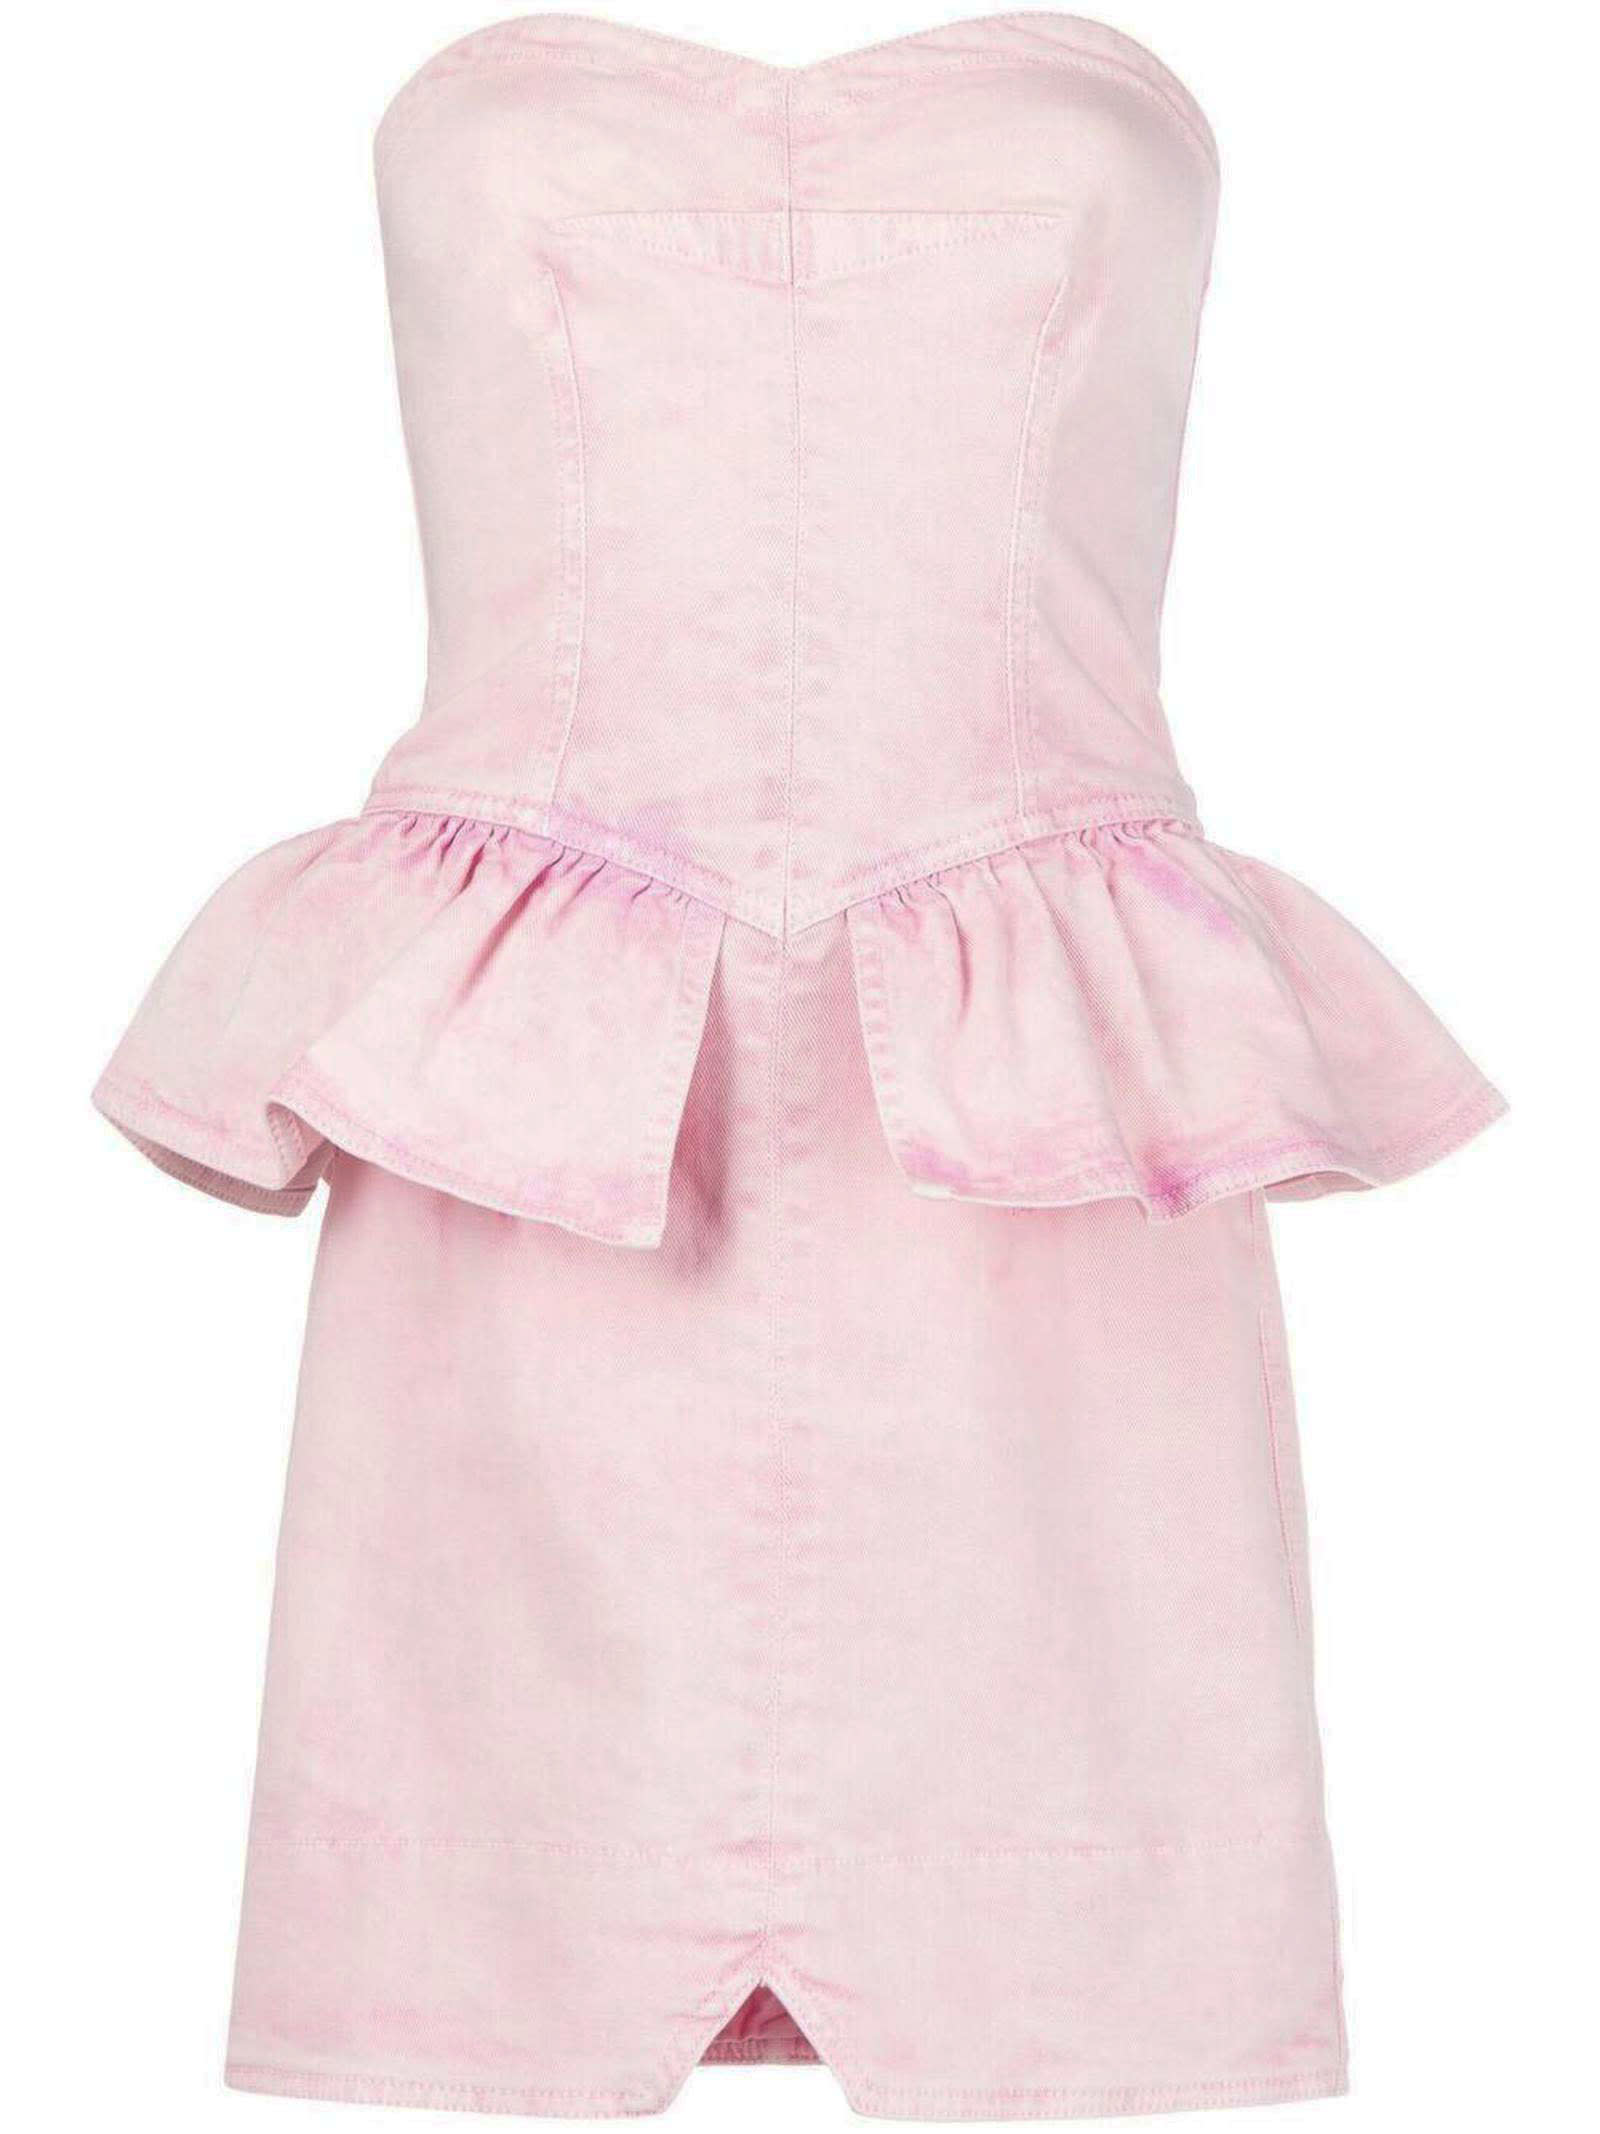 Isabel Marant Light Pink Denim Olizi Dress